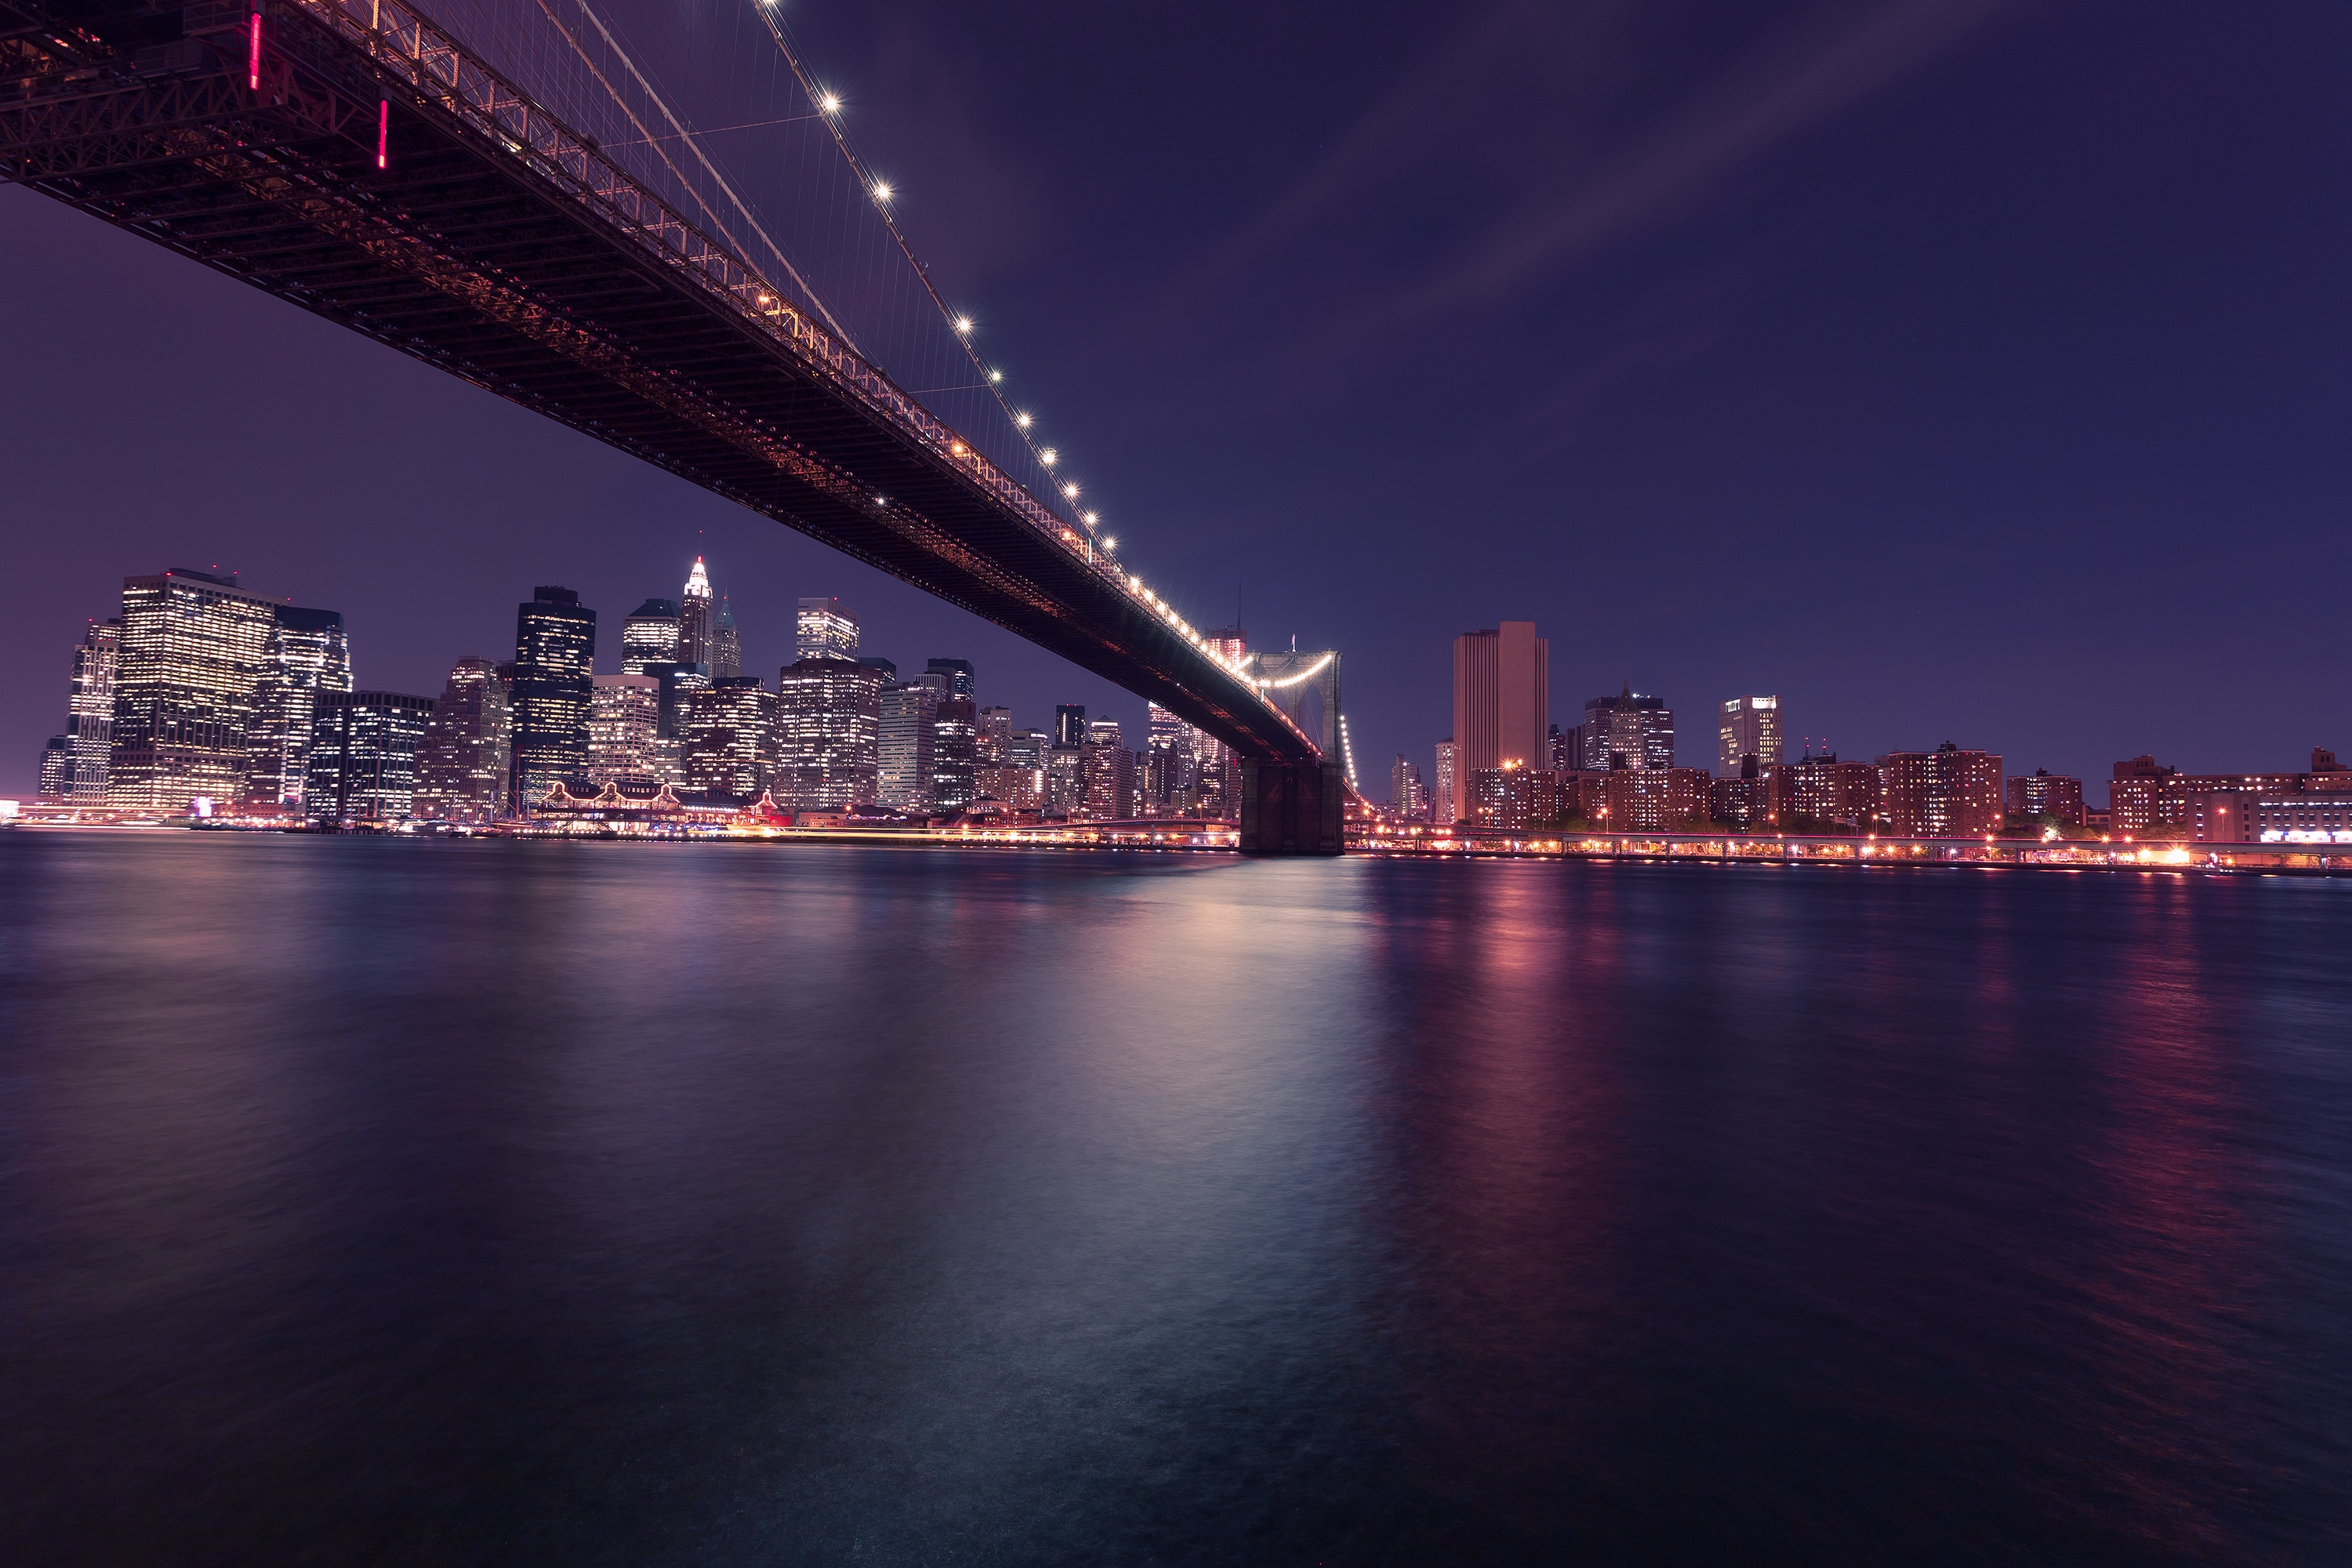 500 Brooklyn Bridge Pictures Download Free Images On Unsplash